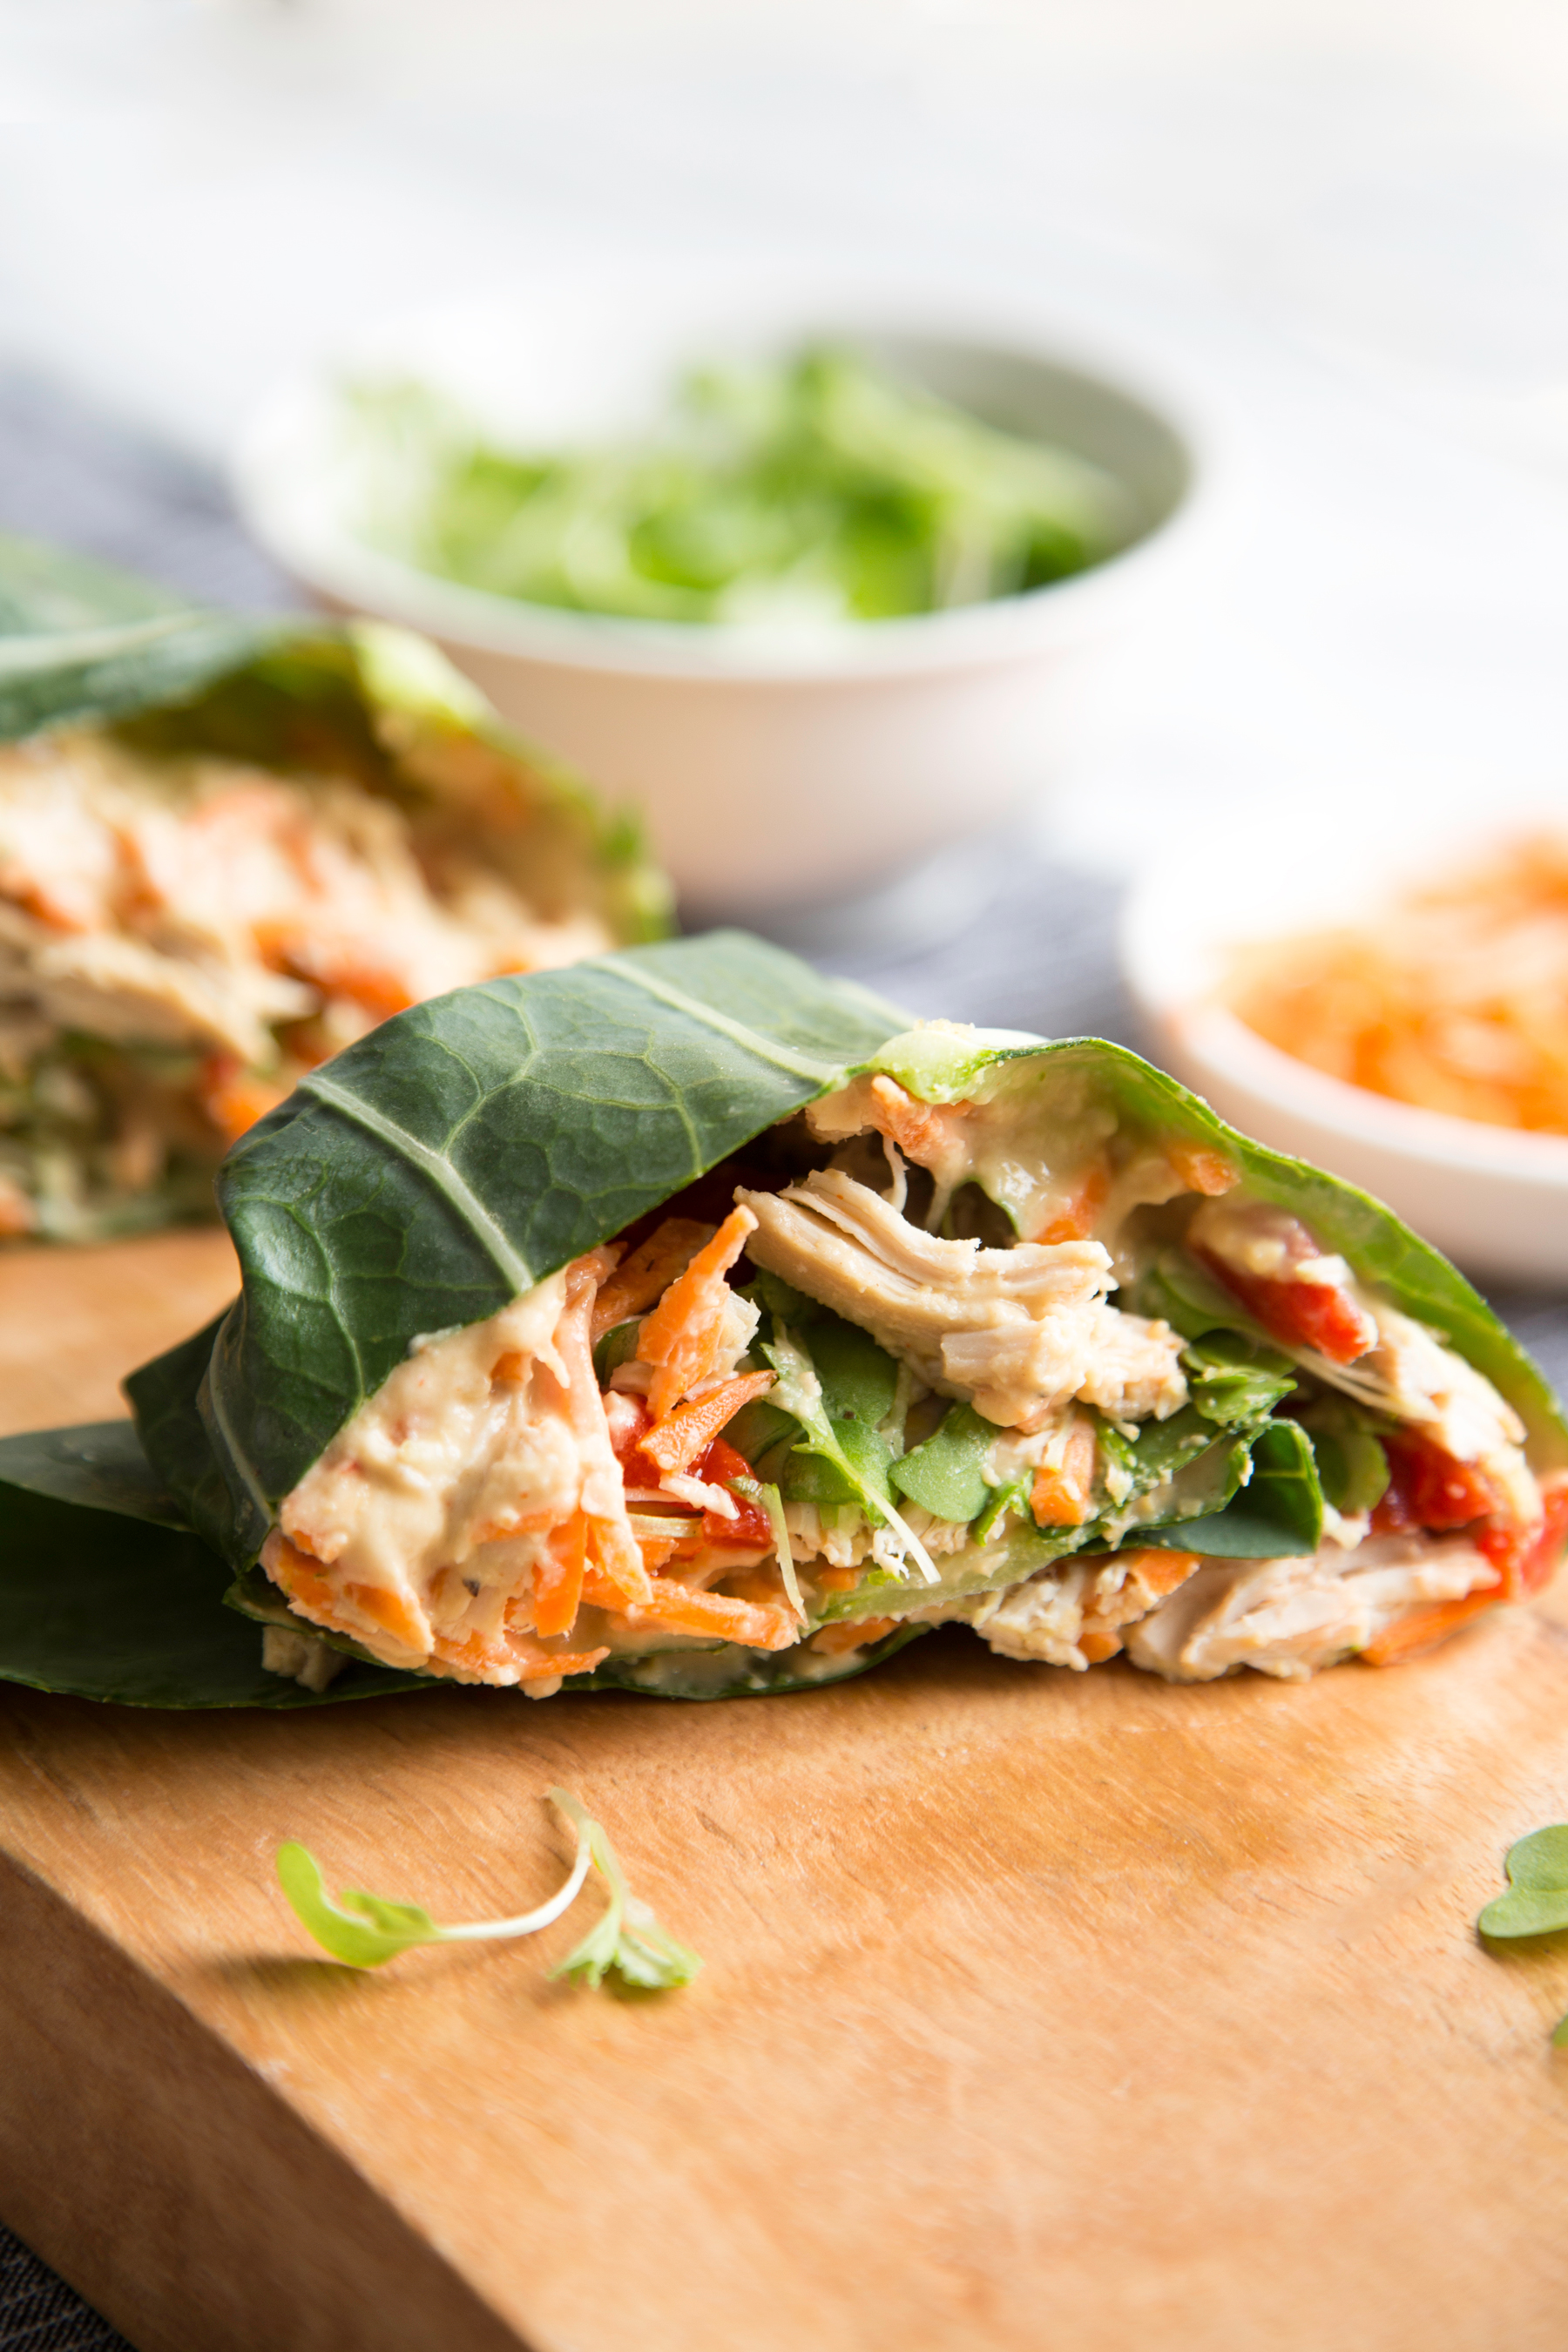 CHICKEN-RECIPES_CHICKEN-HUMMUS-COLLARD-WRAP.jpg